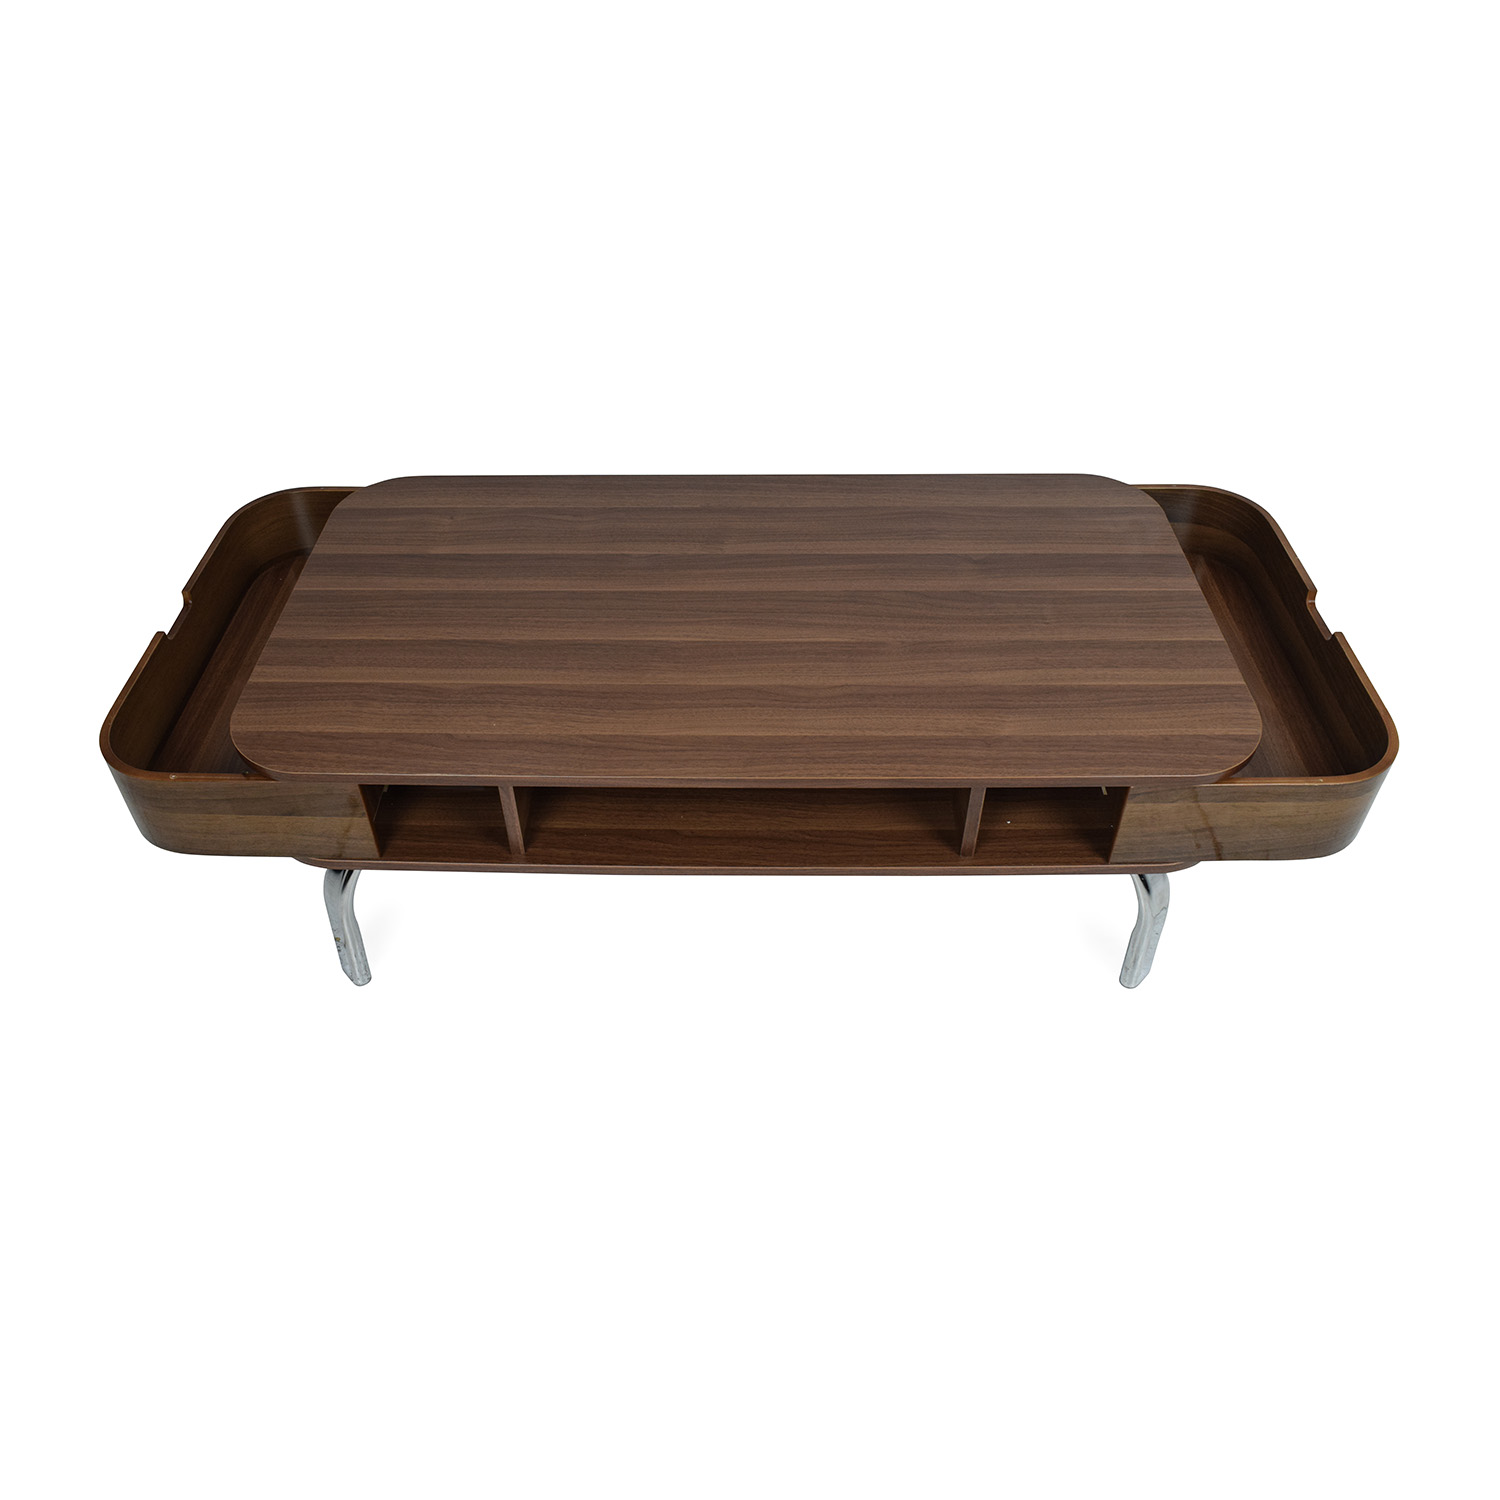 Coffee Table Buy 75 Off Iohomes Iohomes Coffee Table Tables